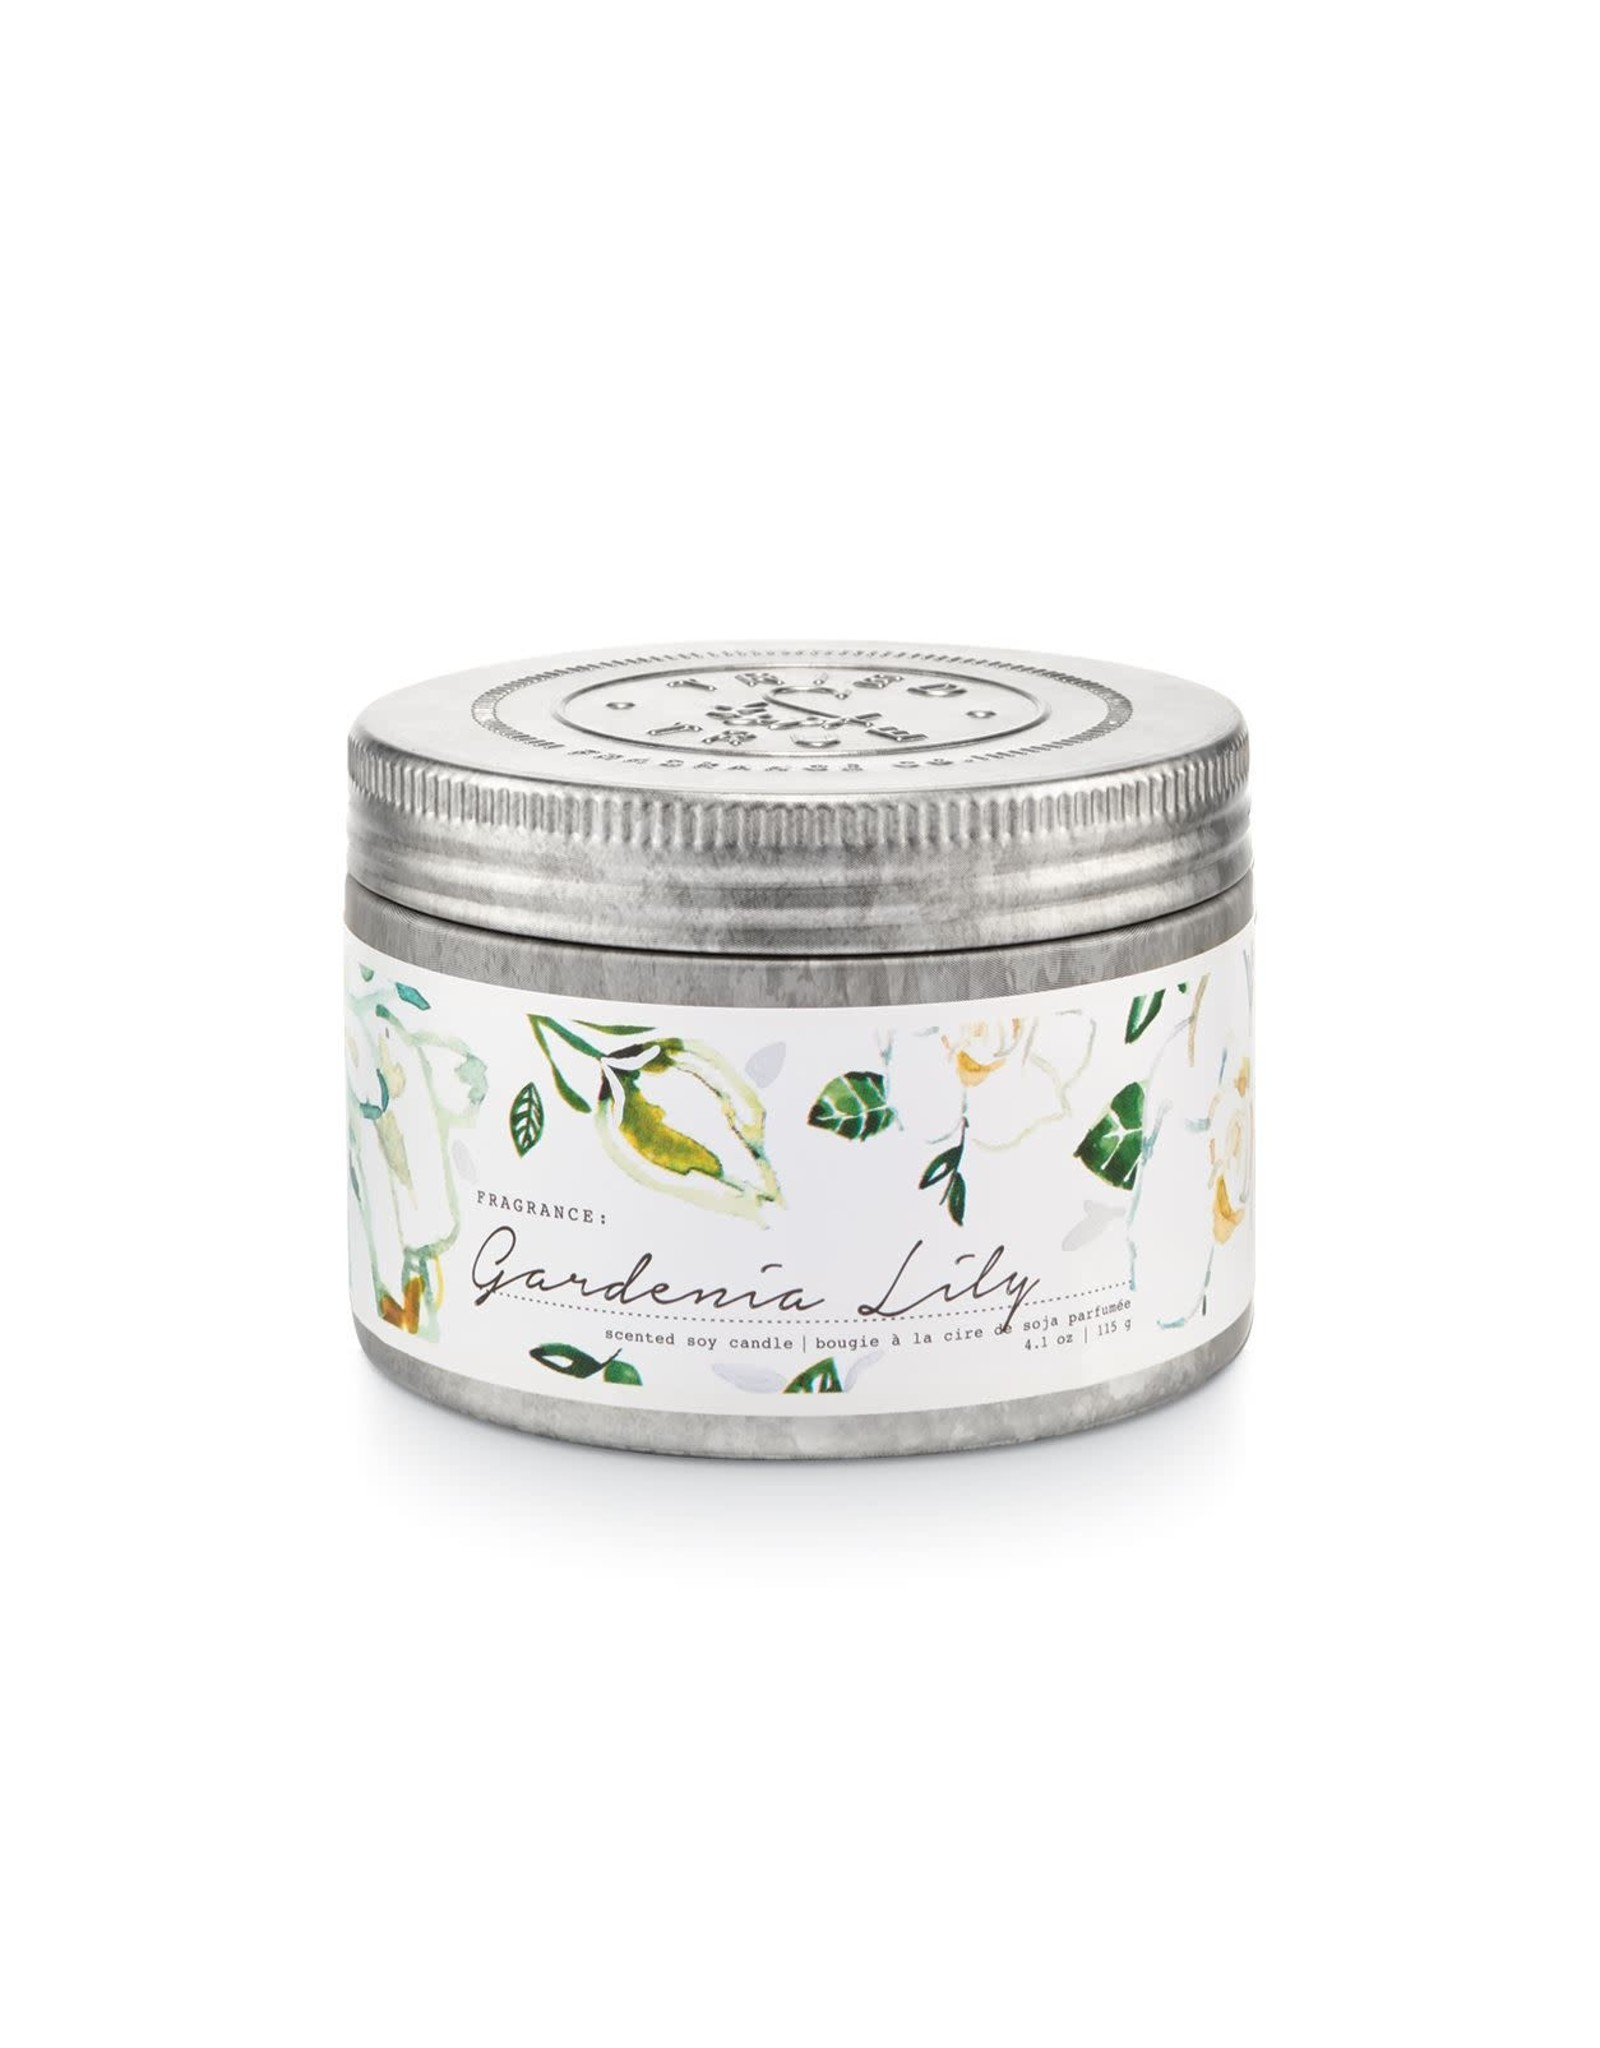 Tried & True 4.1 oz Tin Candle - Gardenia Lily